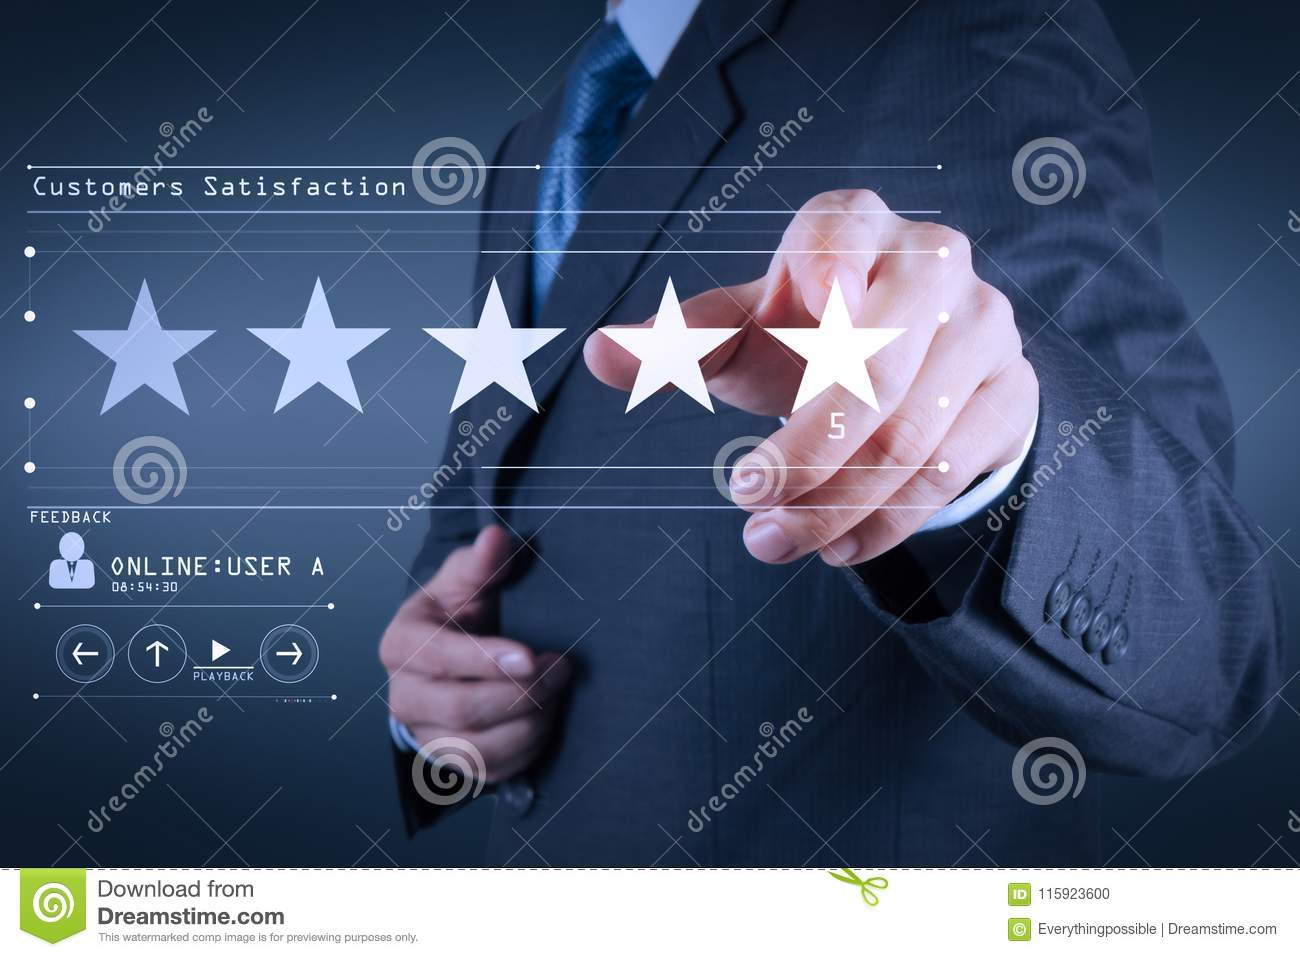 Five stars 5 rating with a businessman is touching virtual computer screen.For positive customer feedback and review with excell